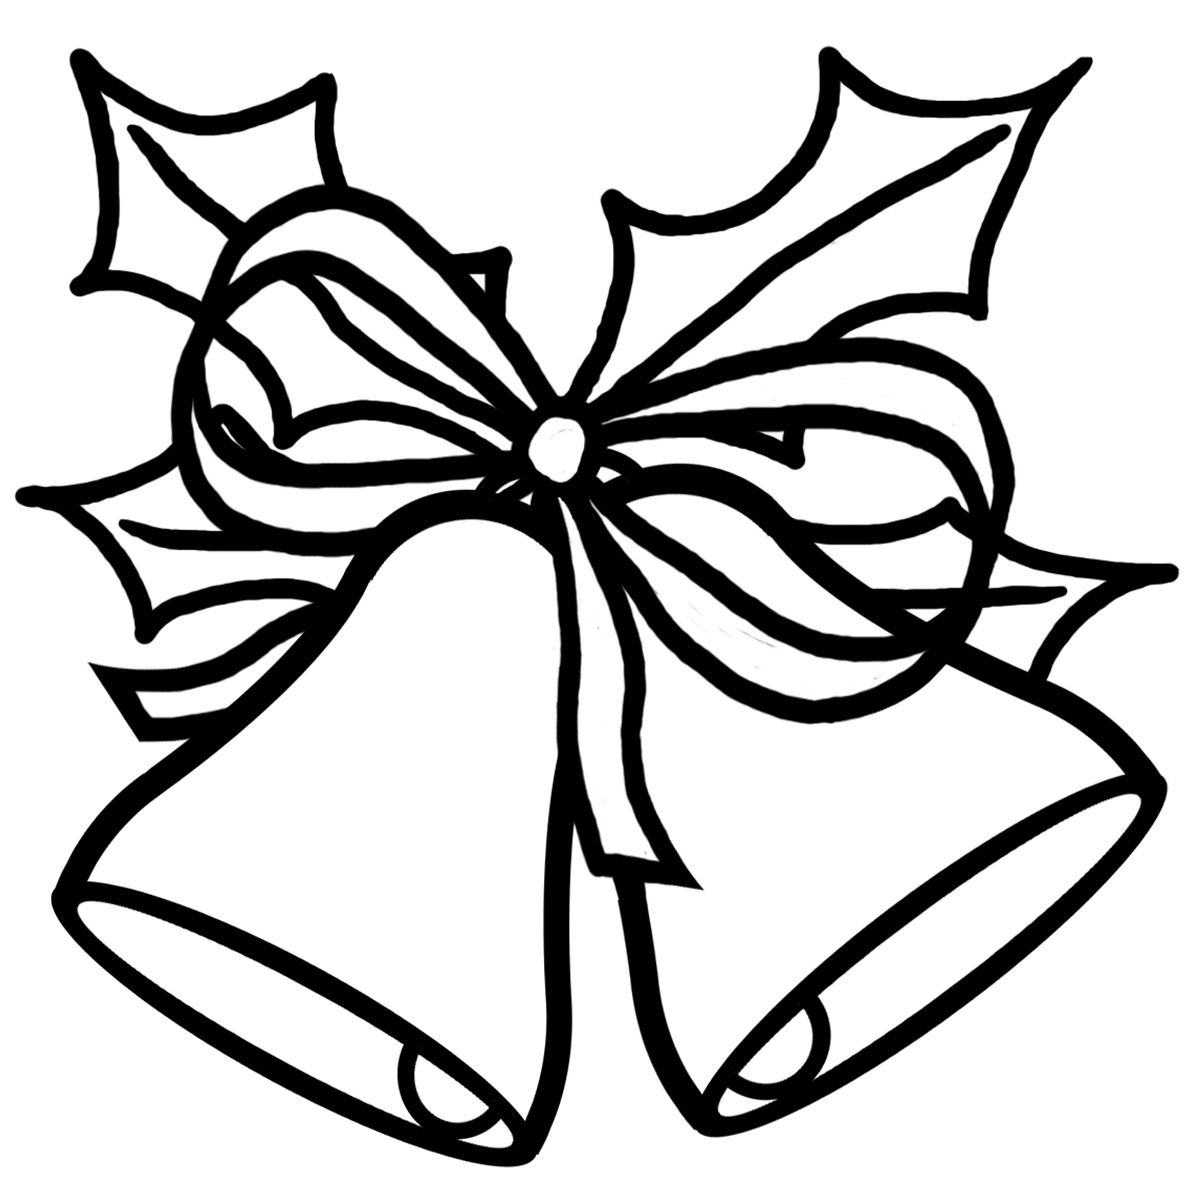 Clip Art Black And White Black And White Clip Art Illustration Of Holiday Or Christmas Bells Christmas Tree Outline Holiday Clipart Xmas Clip Art